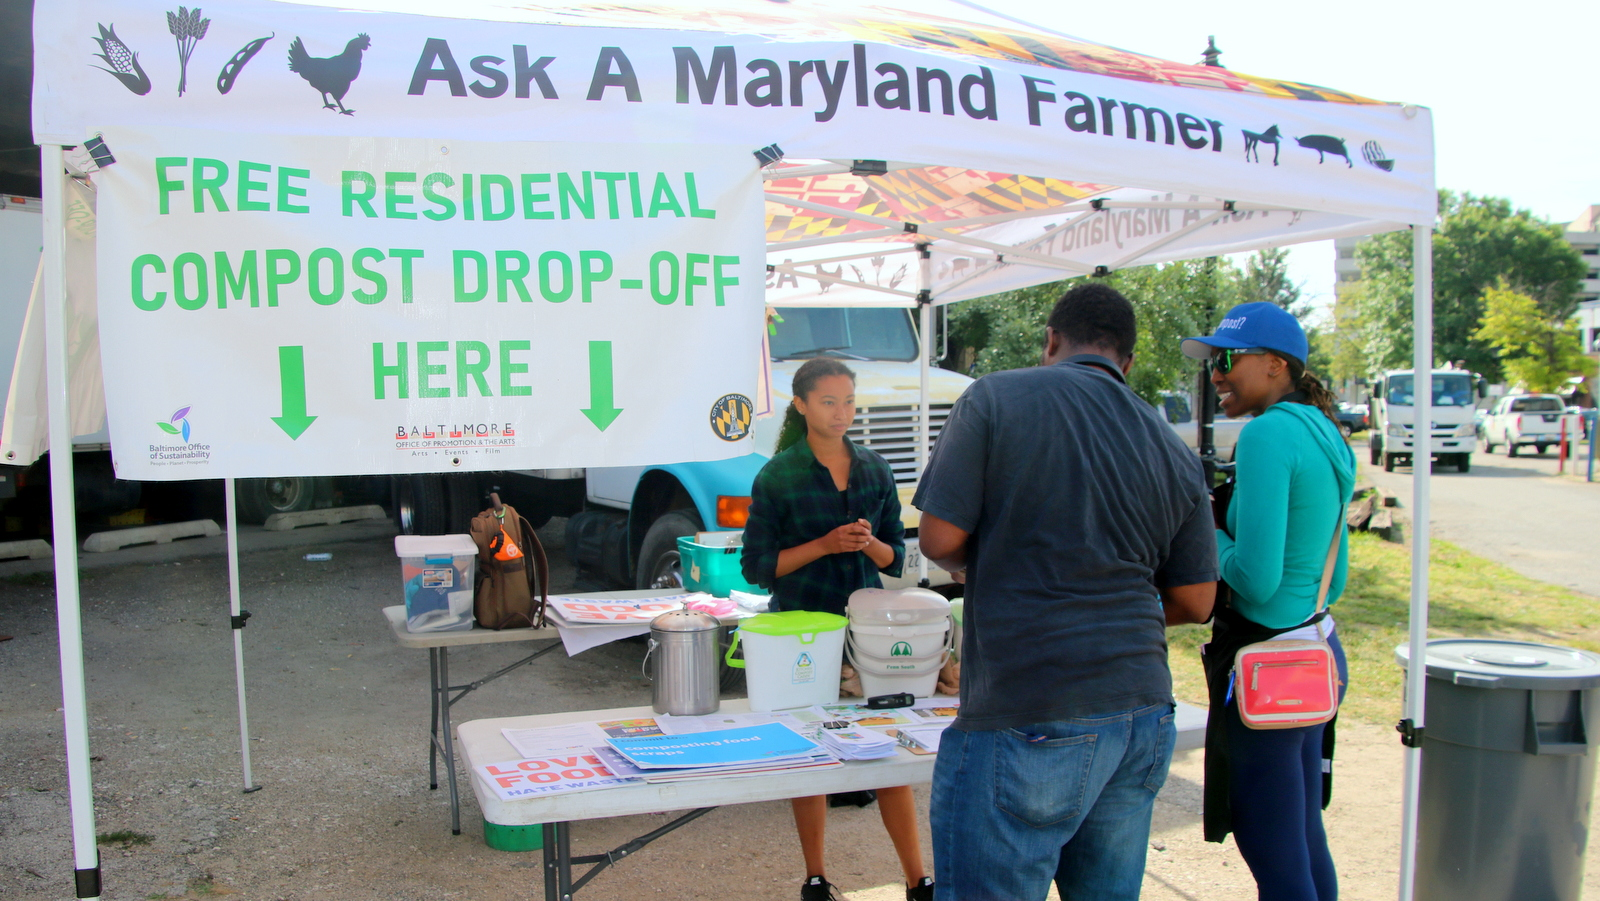 At Baltimore's Sunday farmers market under the Jones Falls Expressway, compostables can be dropped off for free. (Fern Shen)